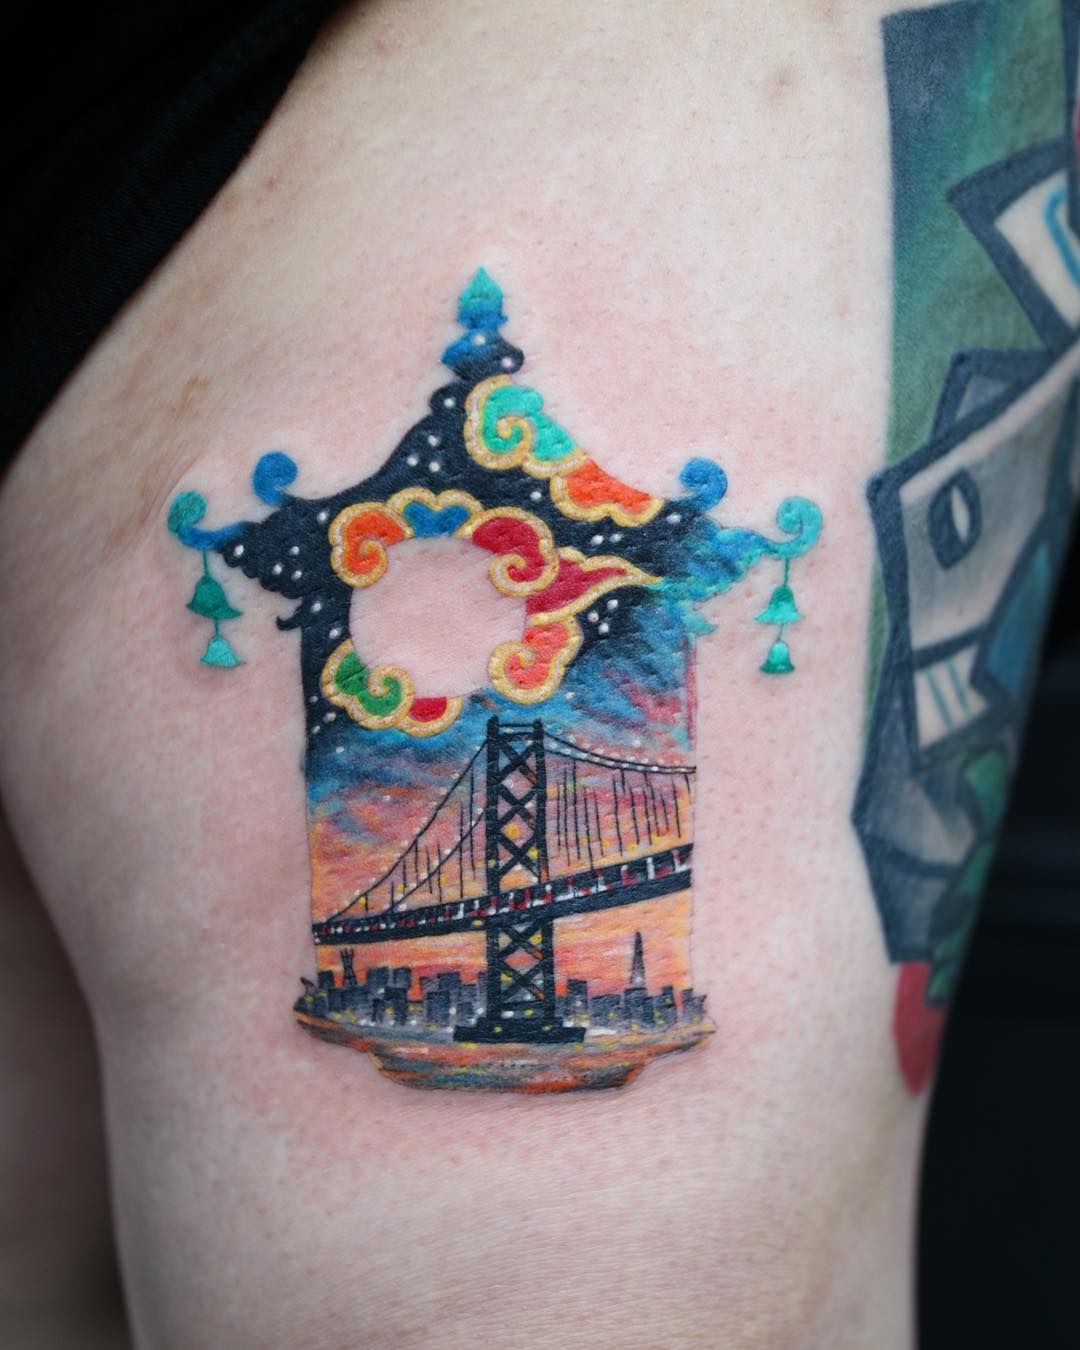 San Francisco Miss There Tattooing Next To Mikeboydtattoos S One Pitta Pittakkm Kkmta Tattoo Styles Japanese Tattoo Japanese Tattoo Designs